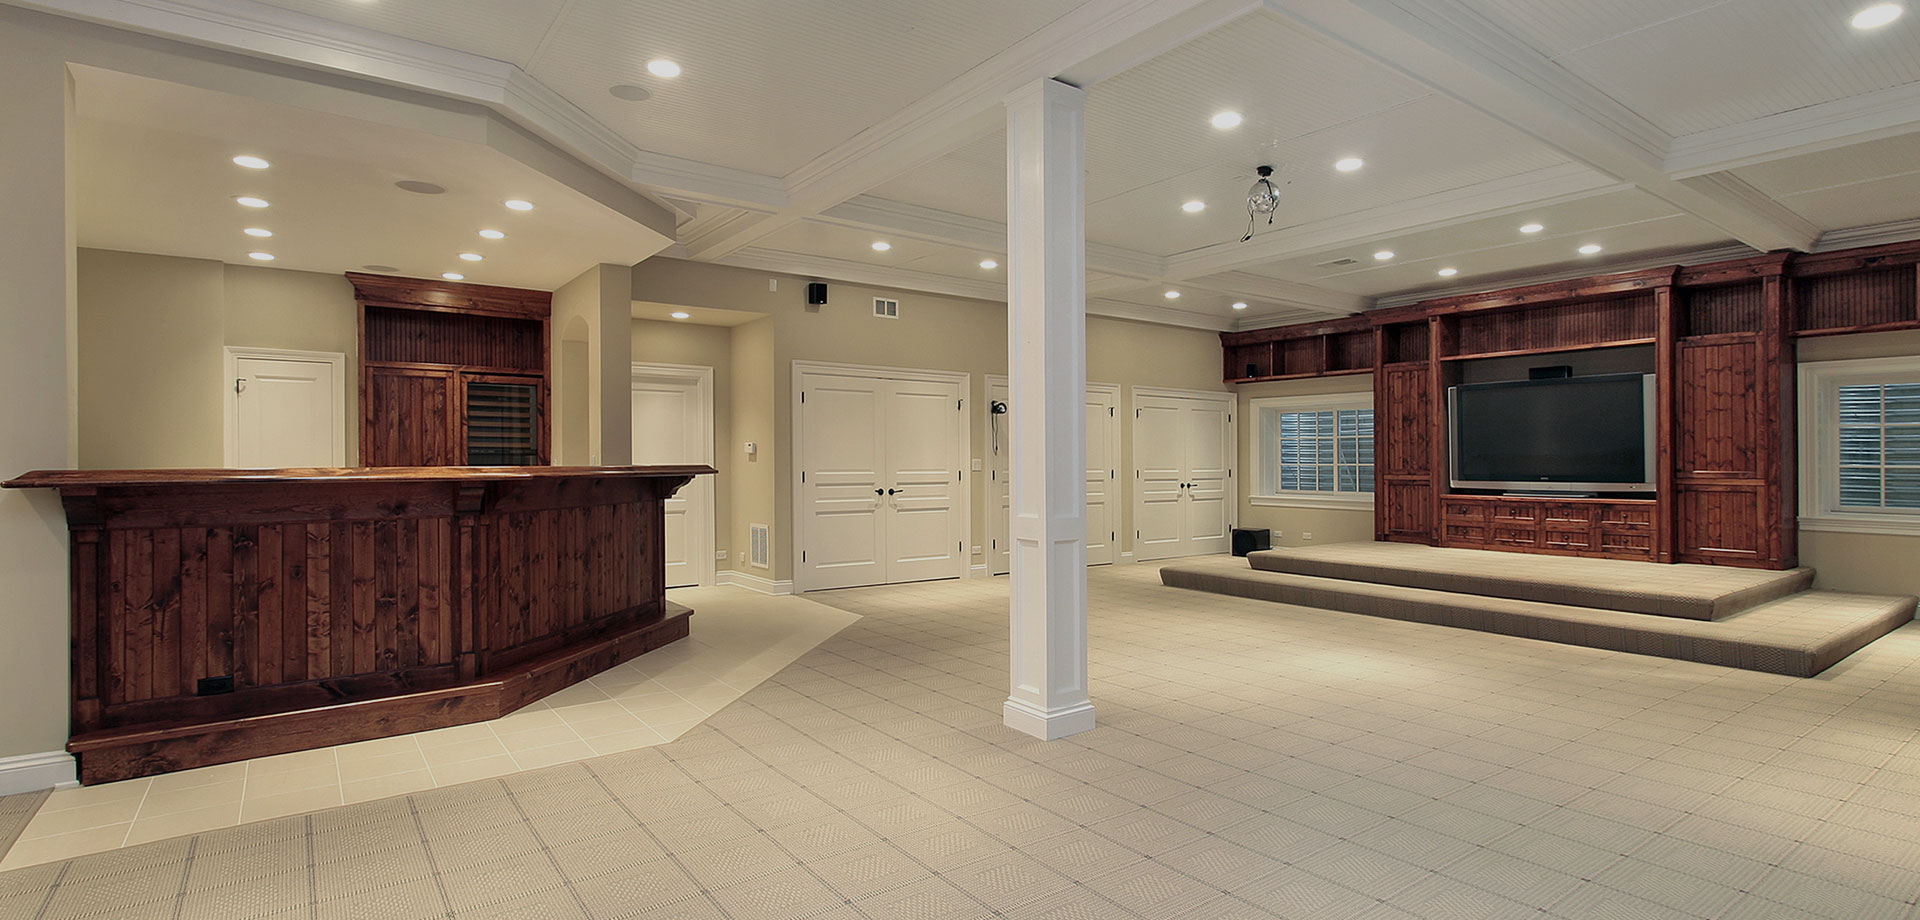 Basement finishing services in Aurora, IL